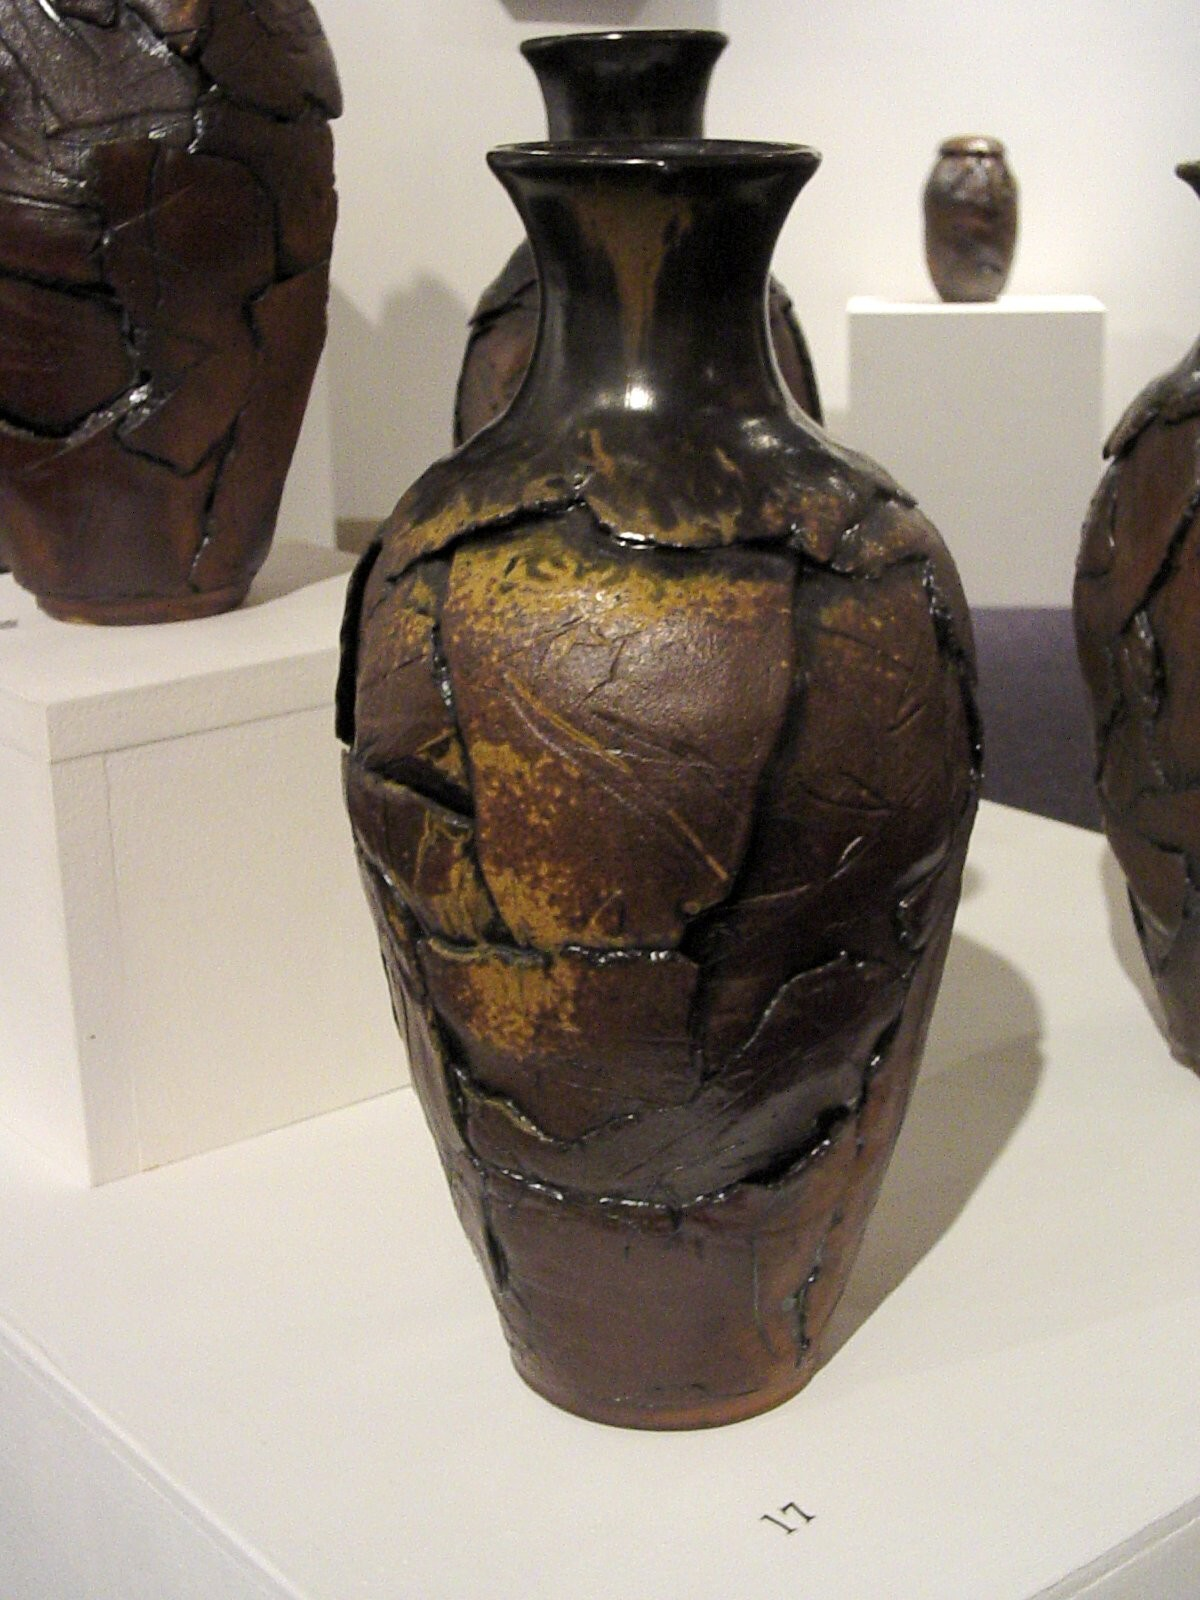 Roald Molberg creates pottery from the inside out